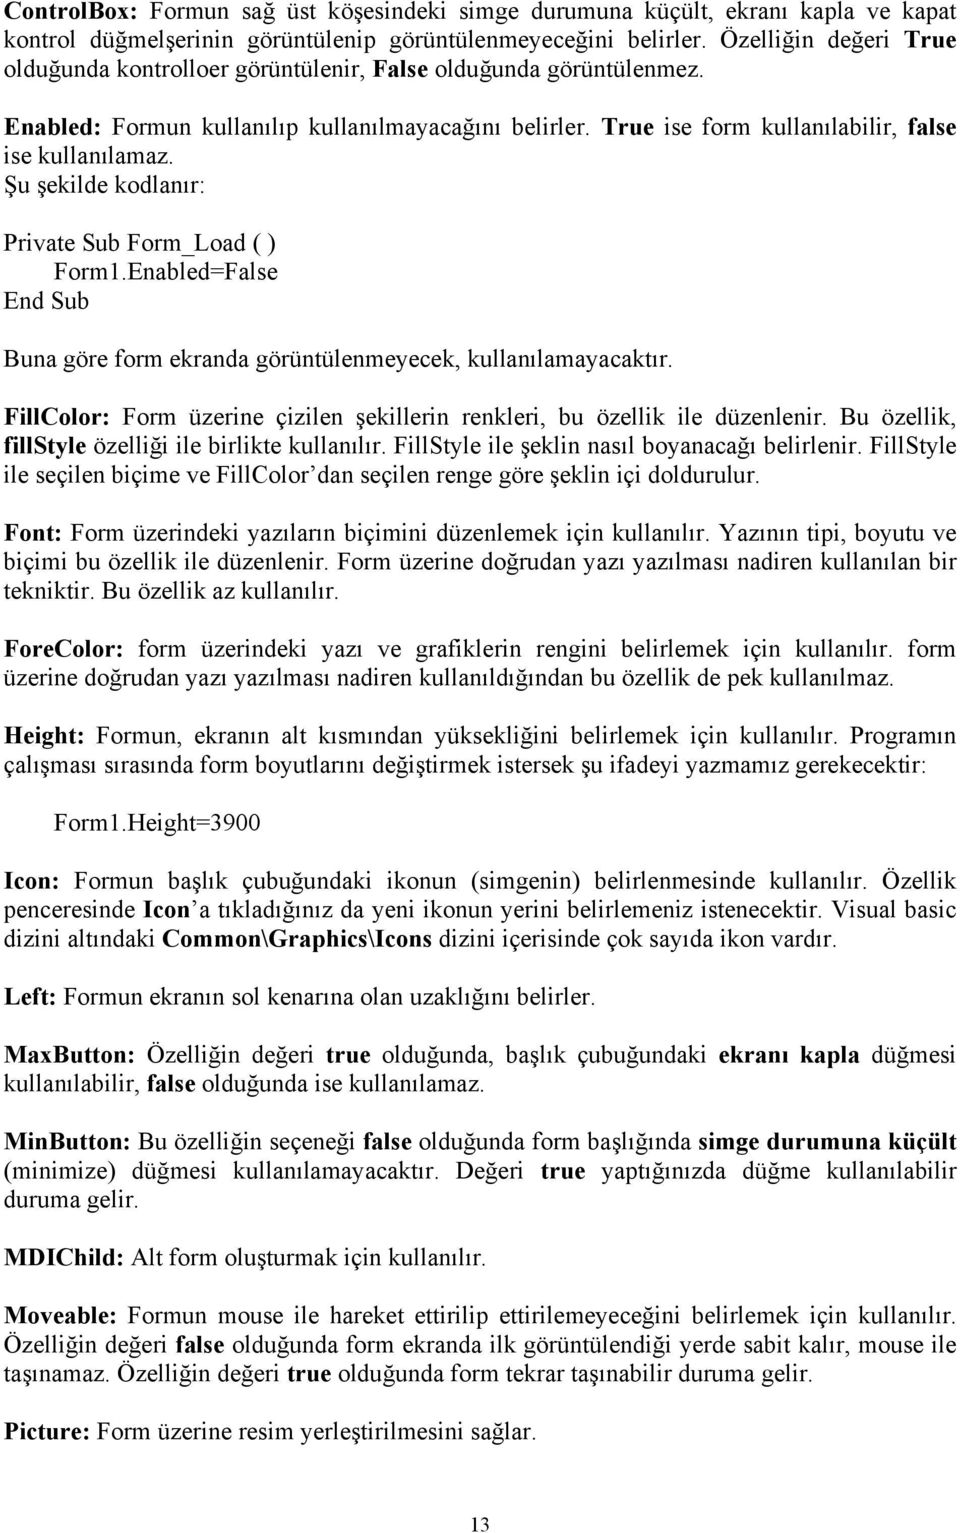 Şu şekilde kodlanır: Private Sub Form_Load ( ) Form1.Enabled=False End Sub Buna göre form ekranda görüntülenmeyecek, kullanılamayacaktır.